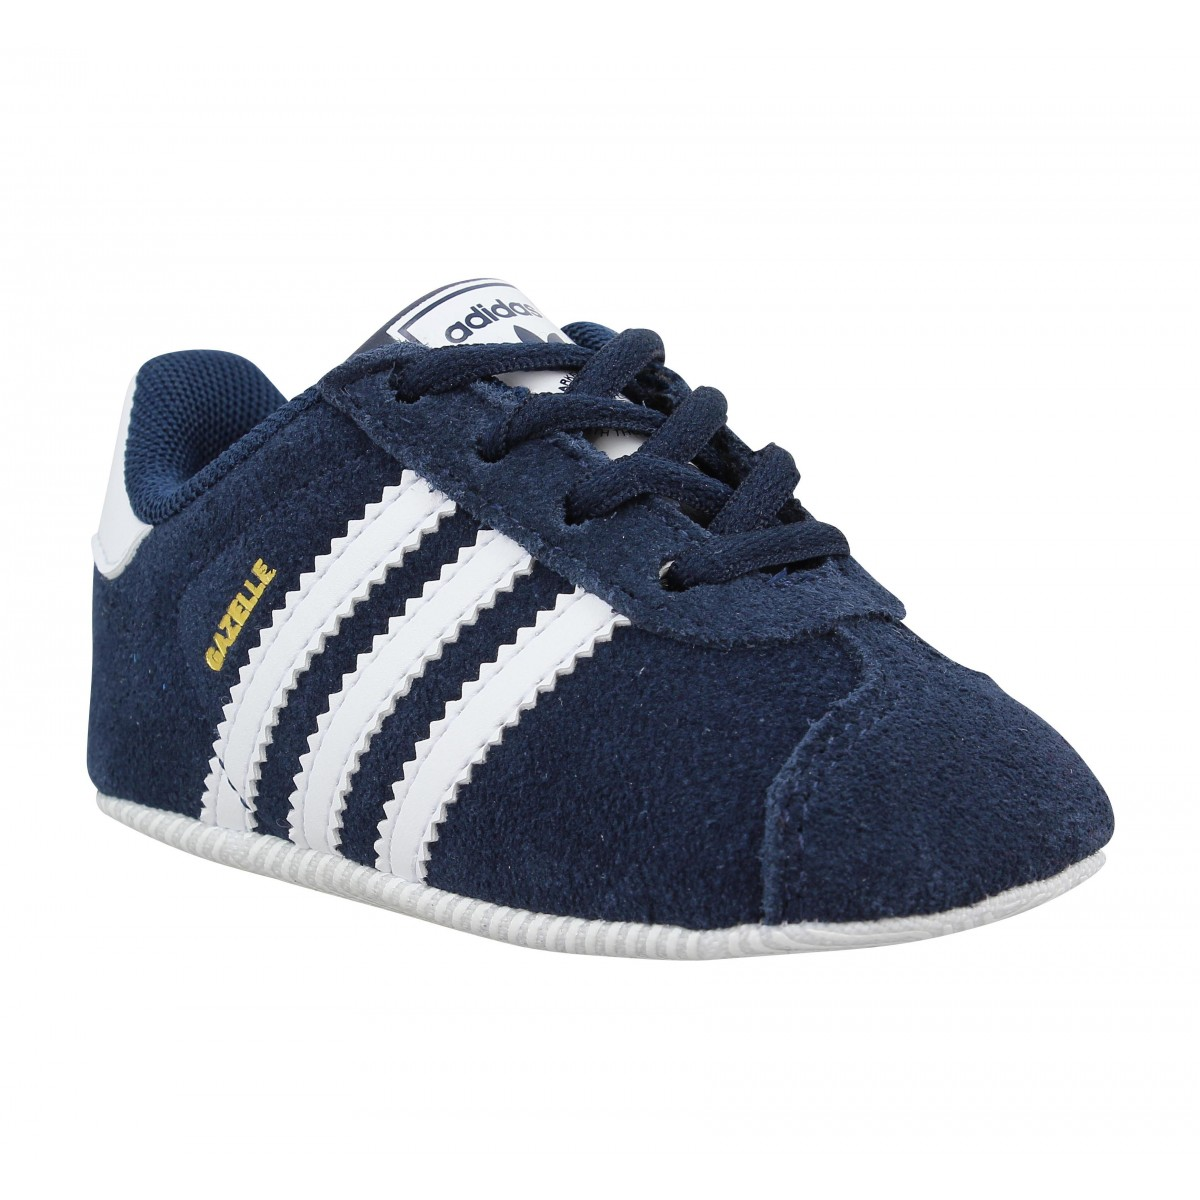 Baskets ADIDAS Gazelle Crib Navy